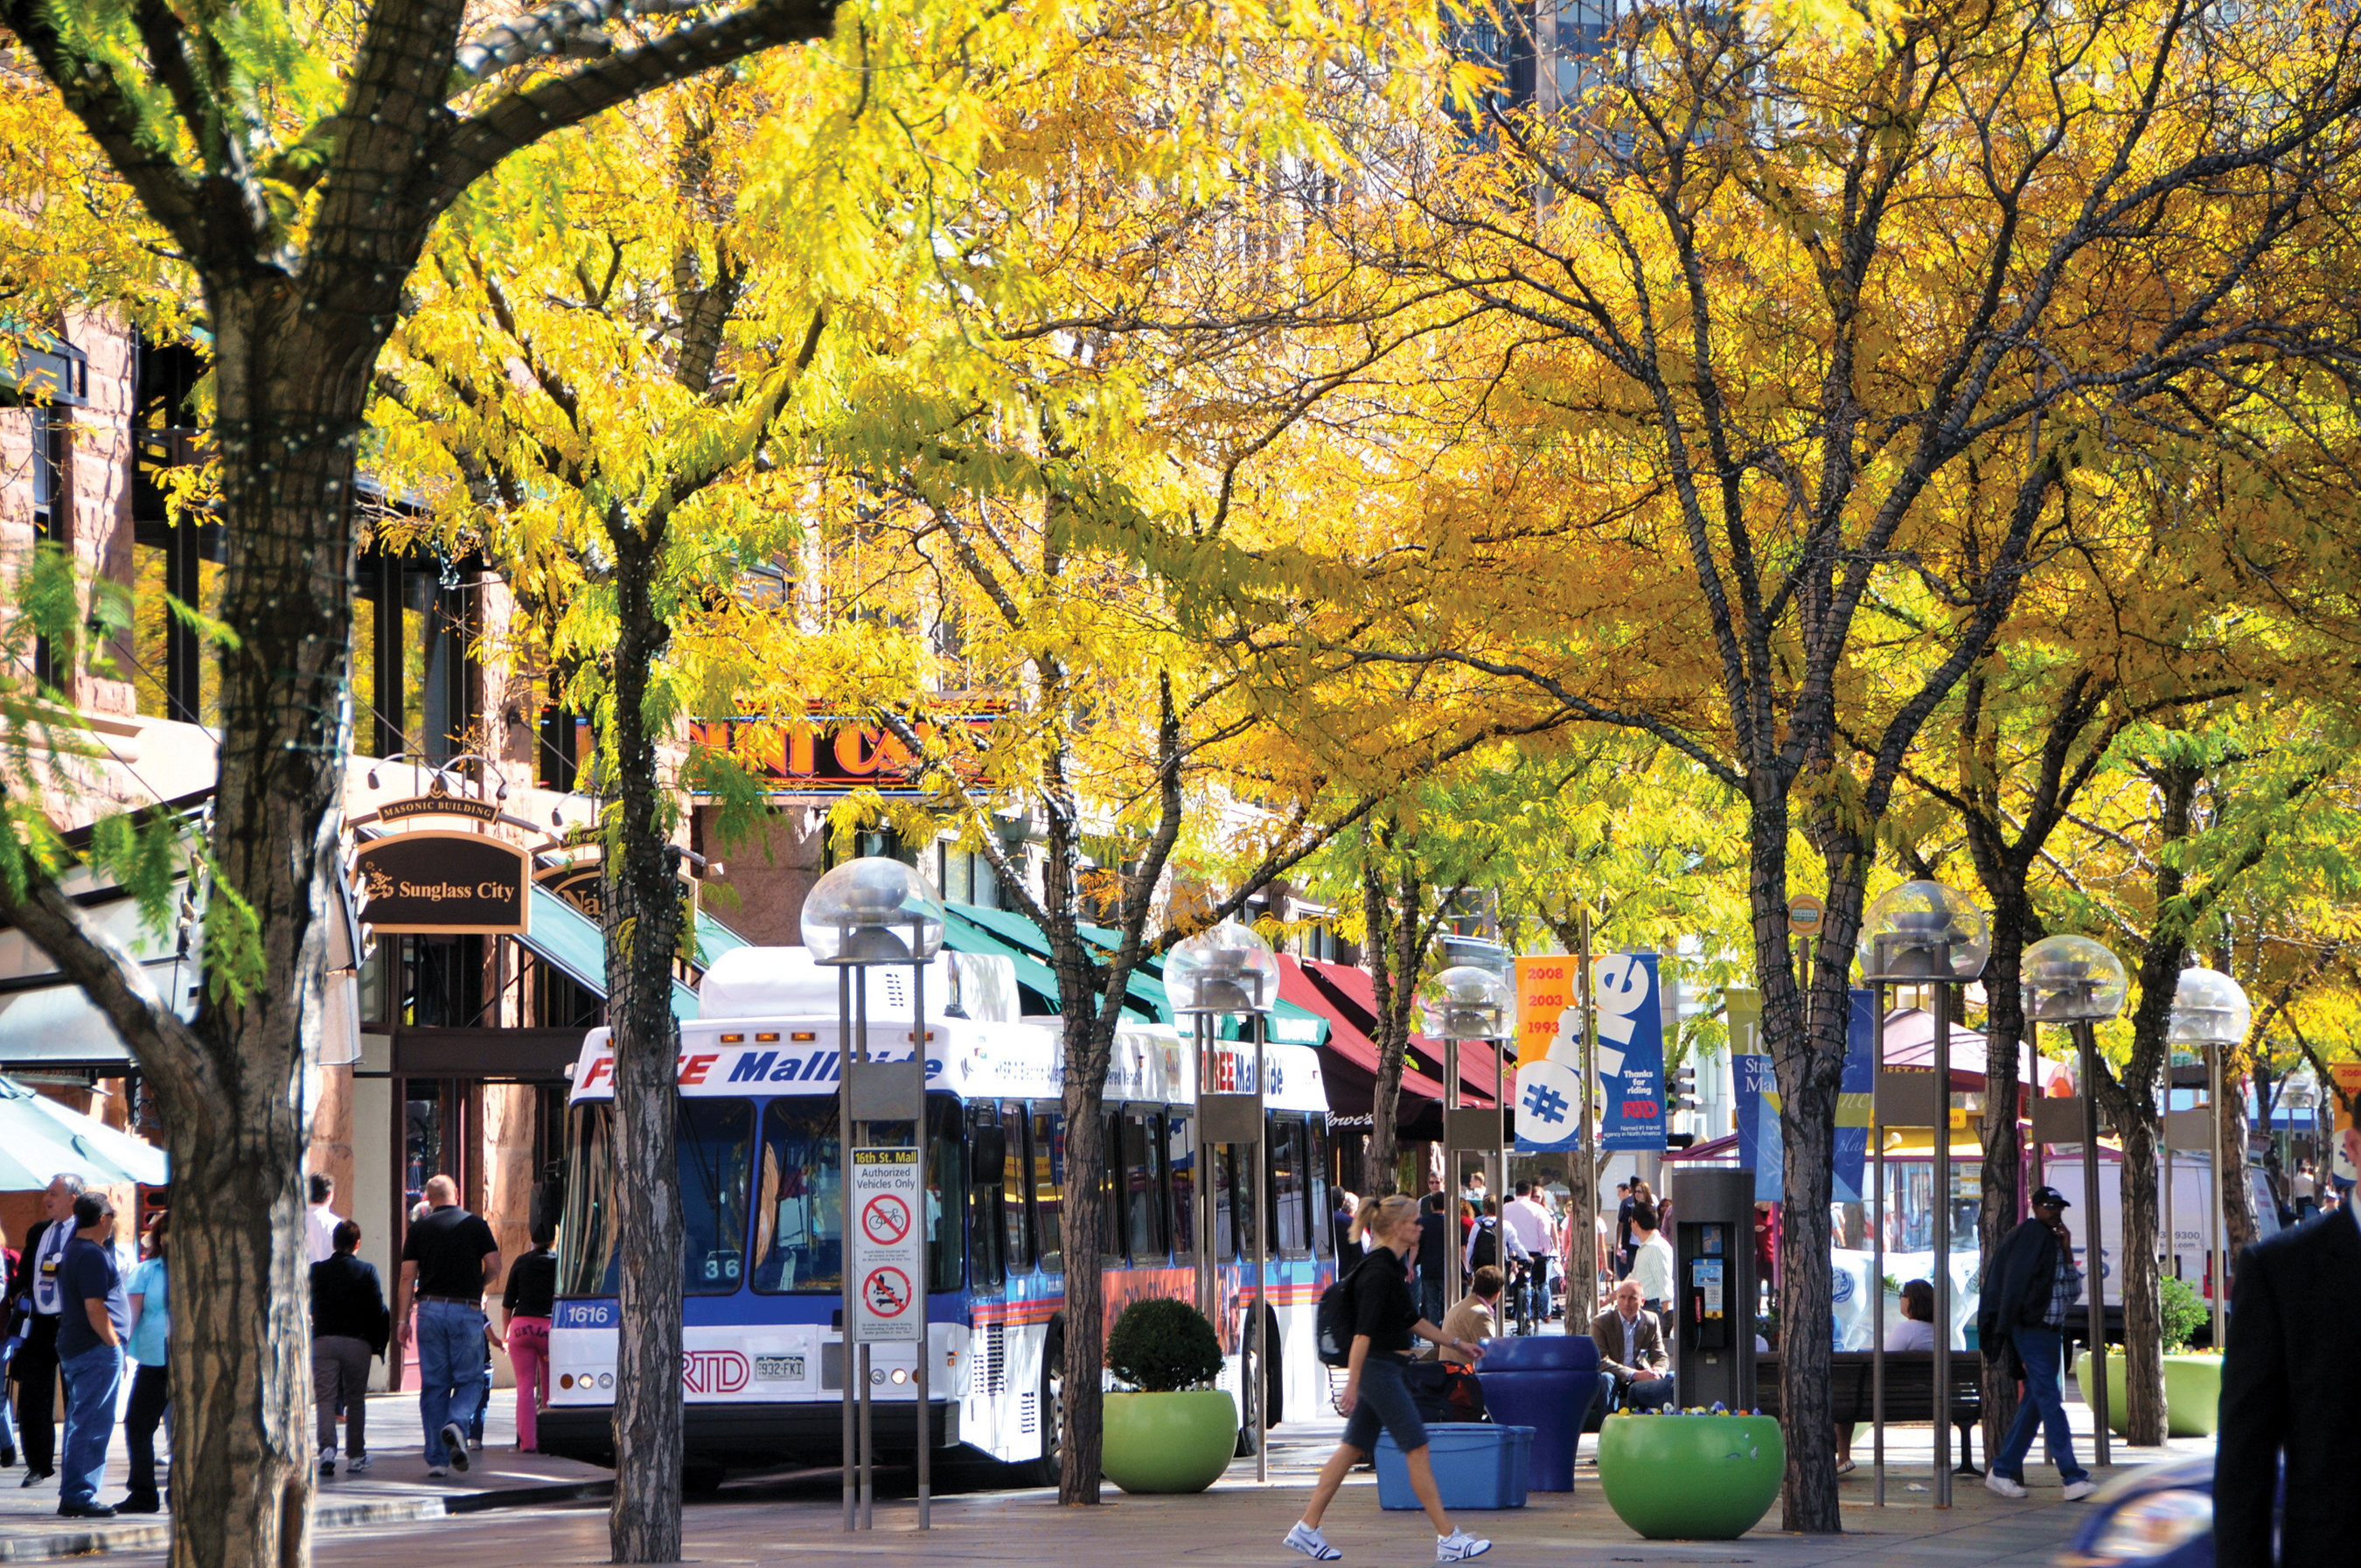 16th Street Mall in Denver, Colorado| VISIT DENVER on map of whistler canada, map of newark airport, map of cornwall england, map major streets denver, map of athens al, map of rockport tx, map of kennebunkport hotels, map of four seasons boston, map of virginia center commons mall, map of hobby airport, map of leavenworth wa hotels,